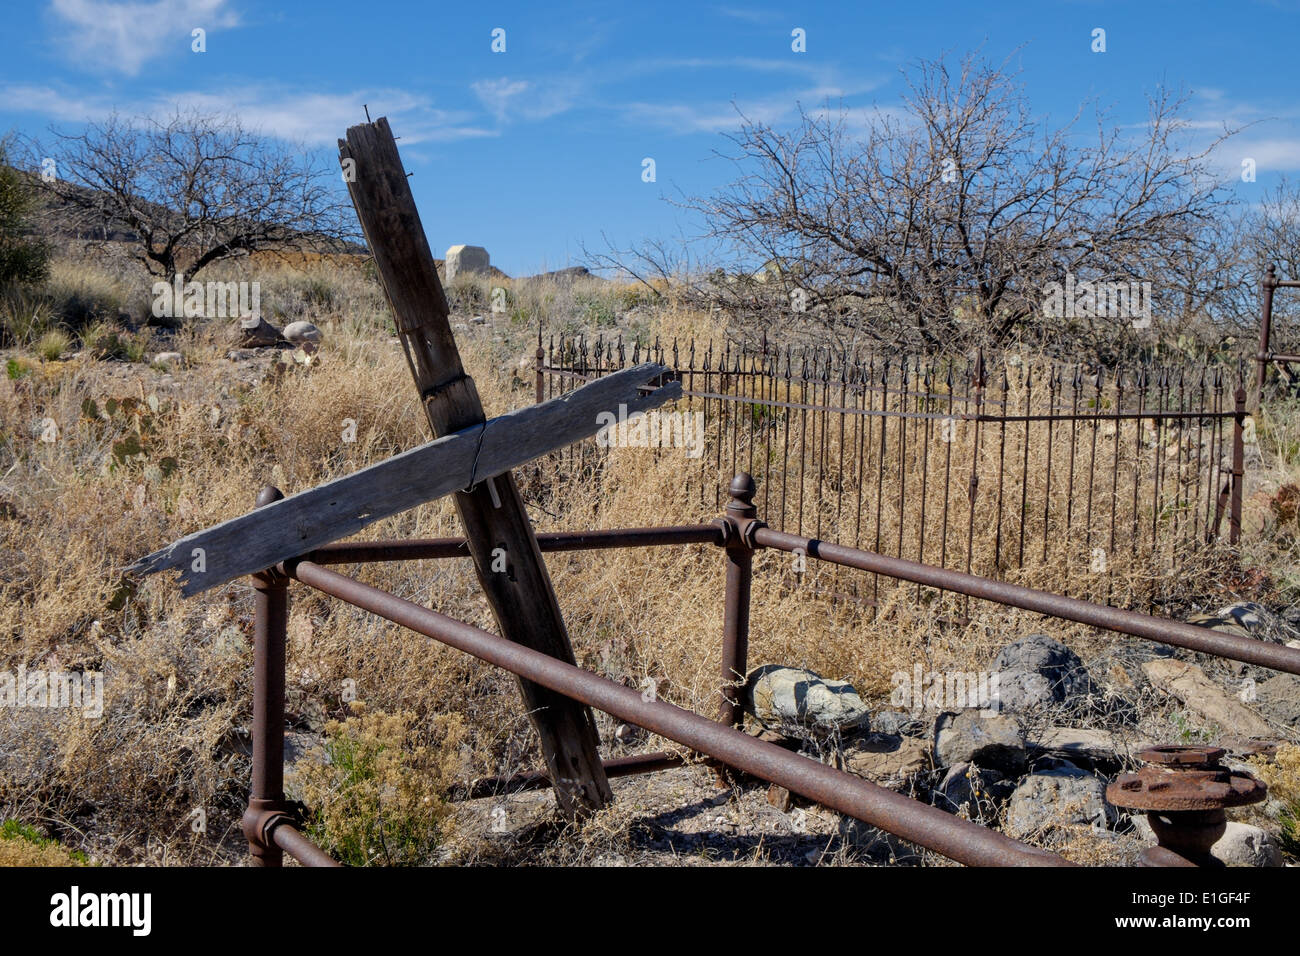 An old miner's grave in the cemetery at the old copper mining town of Jerome, Arizona, USA. - Stock Image